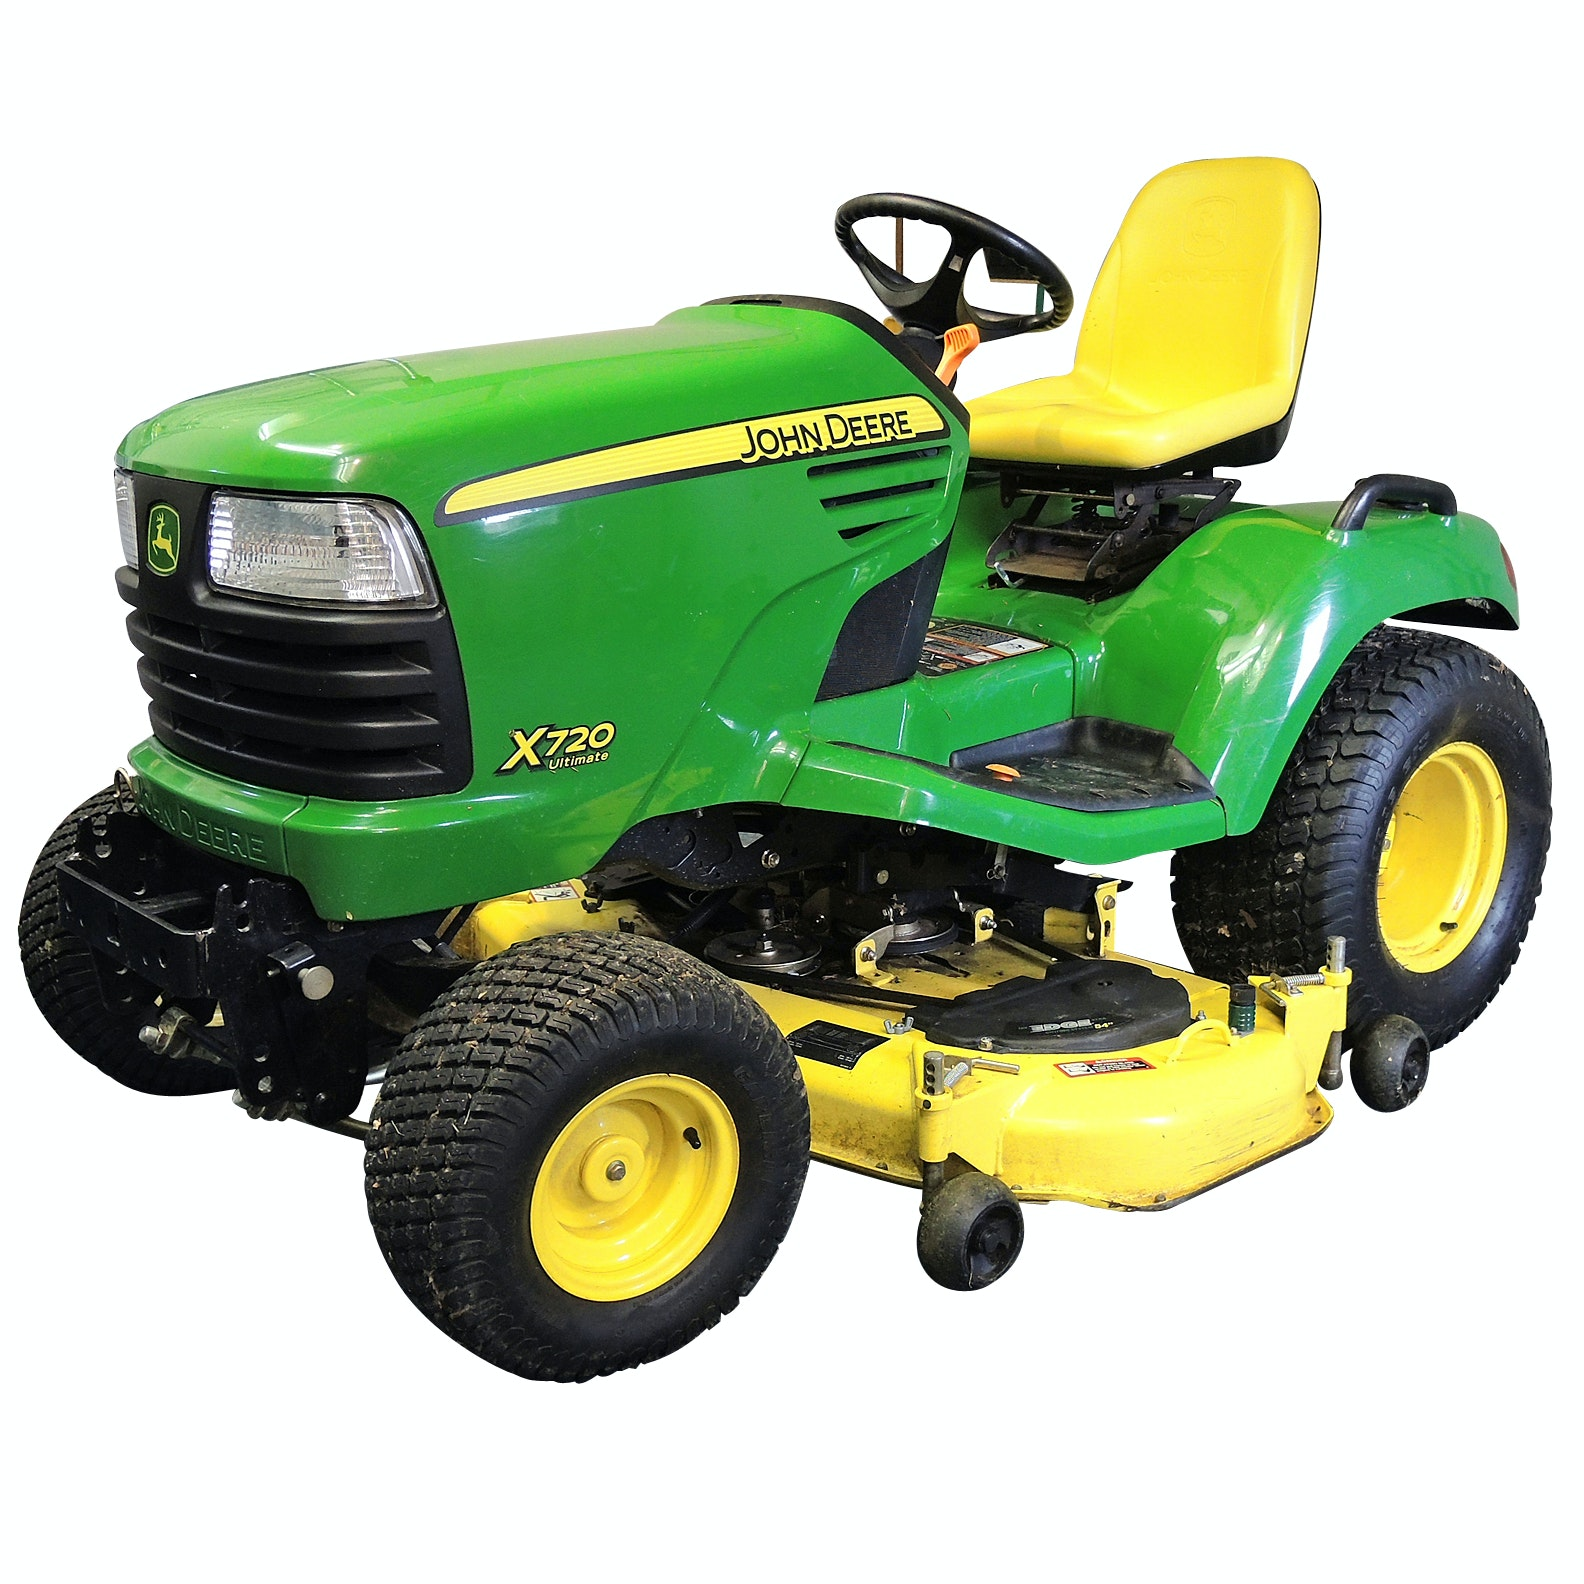 John Deere X720 Riding Tractor Mower